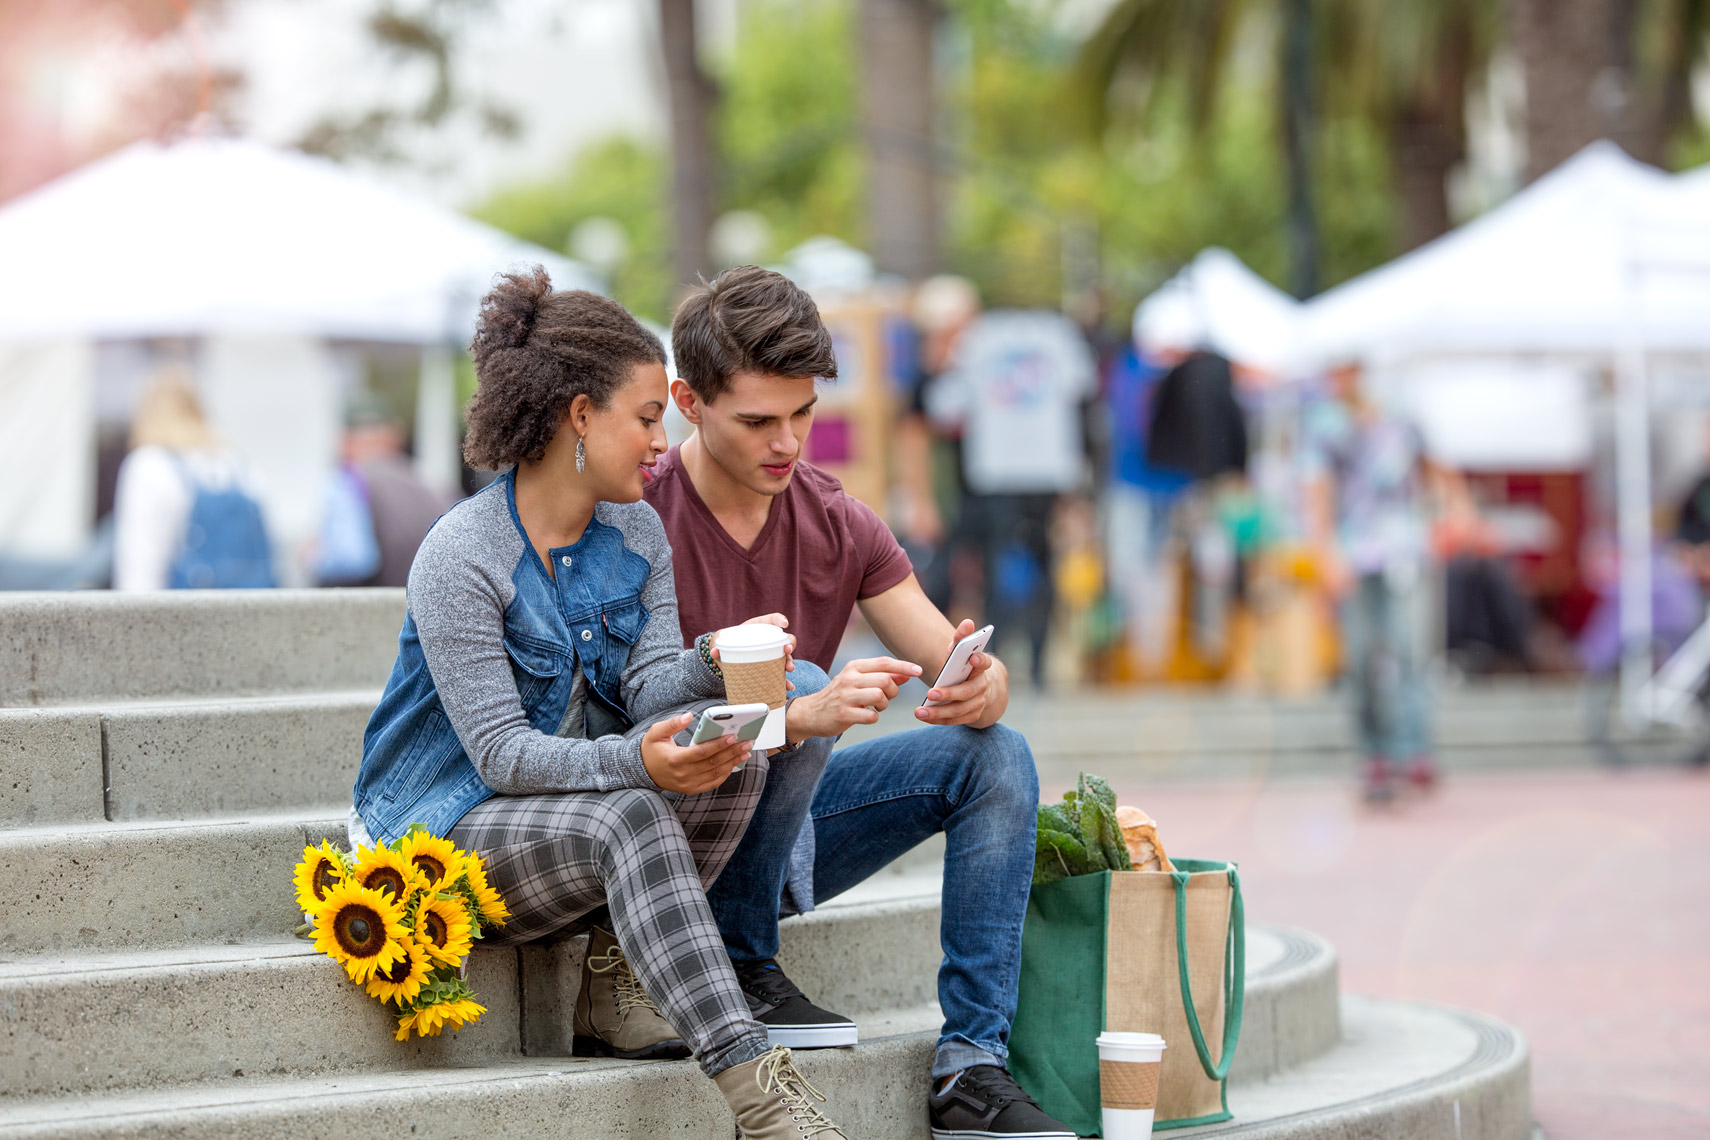 San Francisco Bay Area Advertising, Lifestyle, Commercial Photographer, Students on campus sitting on steps checking phones, smiling, a young couple sitting outdoor, millennials